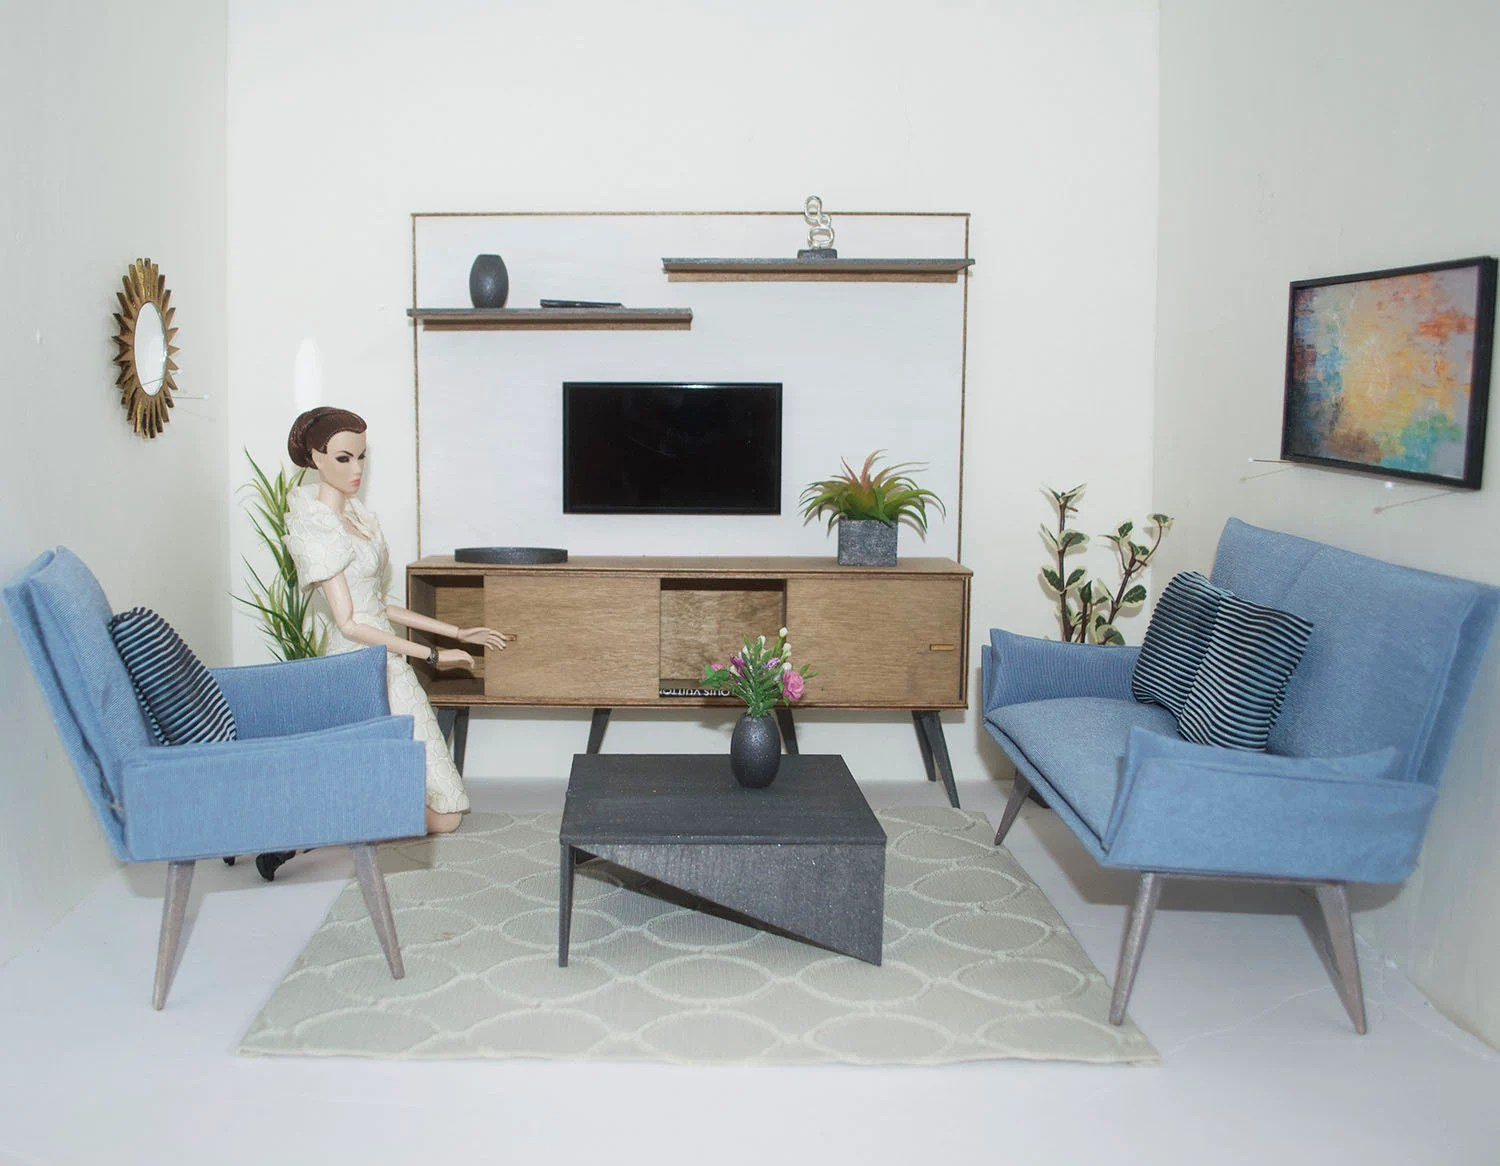 living room furniture sofa chair decorating styles for diorama 1 6 scale modern mid century etsy image 0